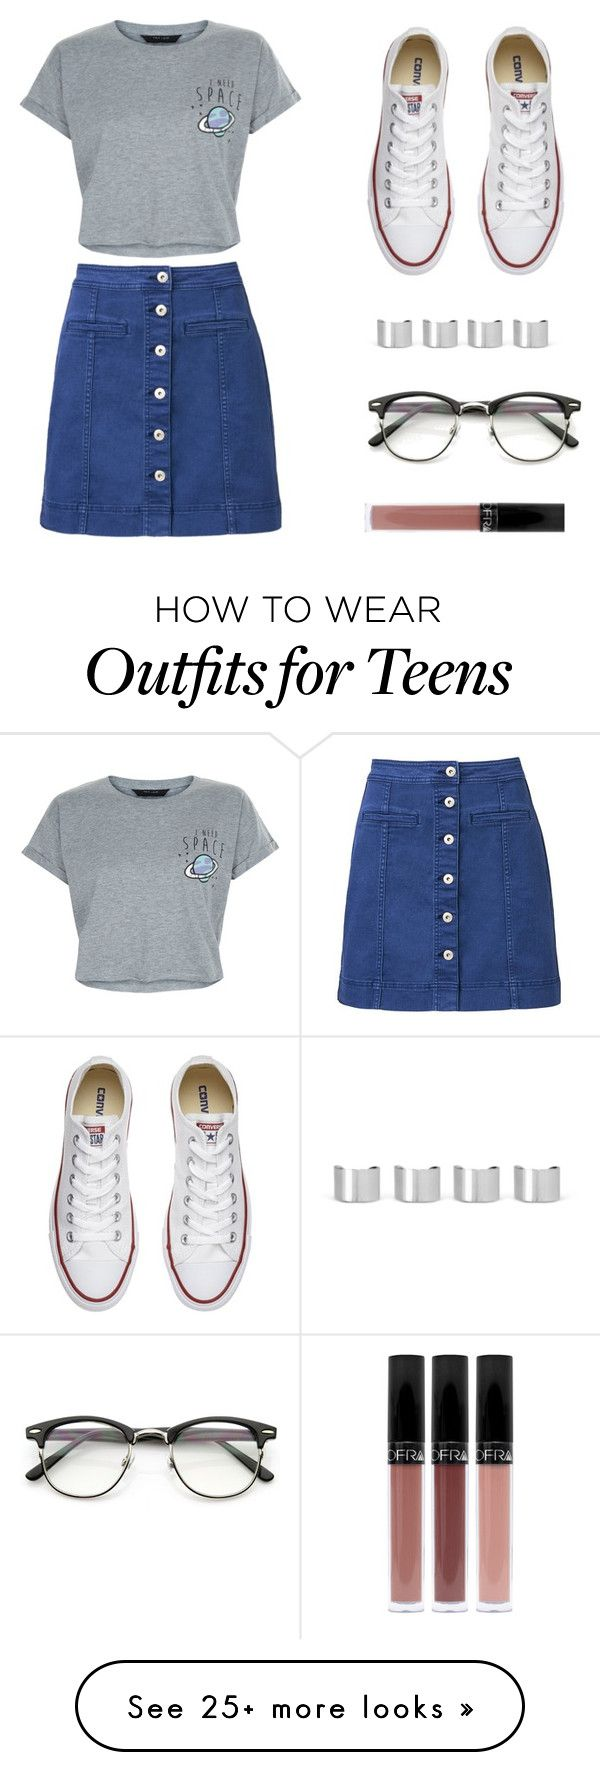 """Untitled #456"" by deborasilva02 on Polyvore featuring Witchery, New Look, Converse, Maison Margiela and ZeroUV"